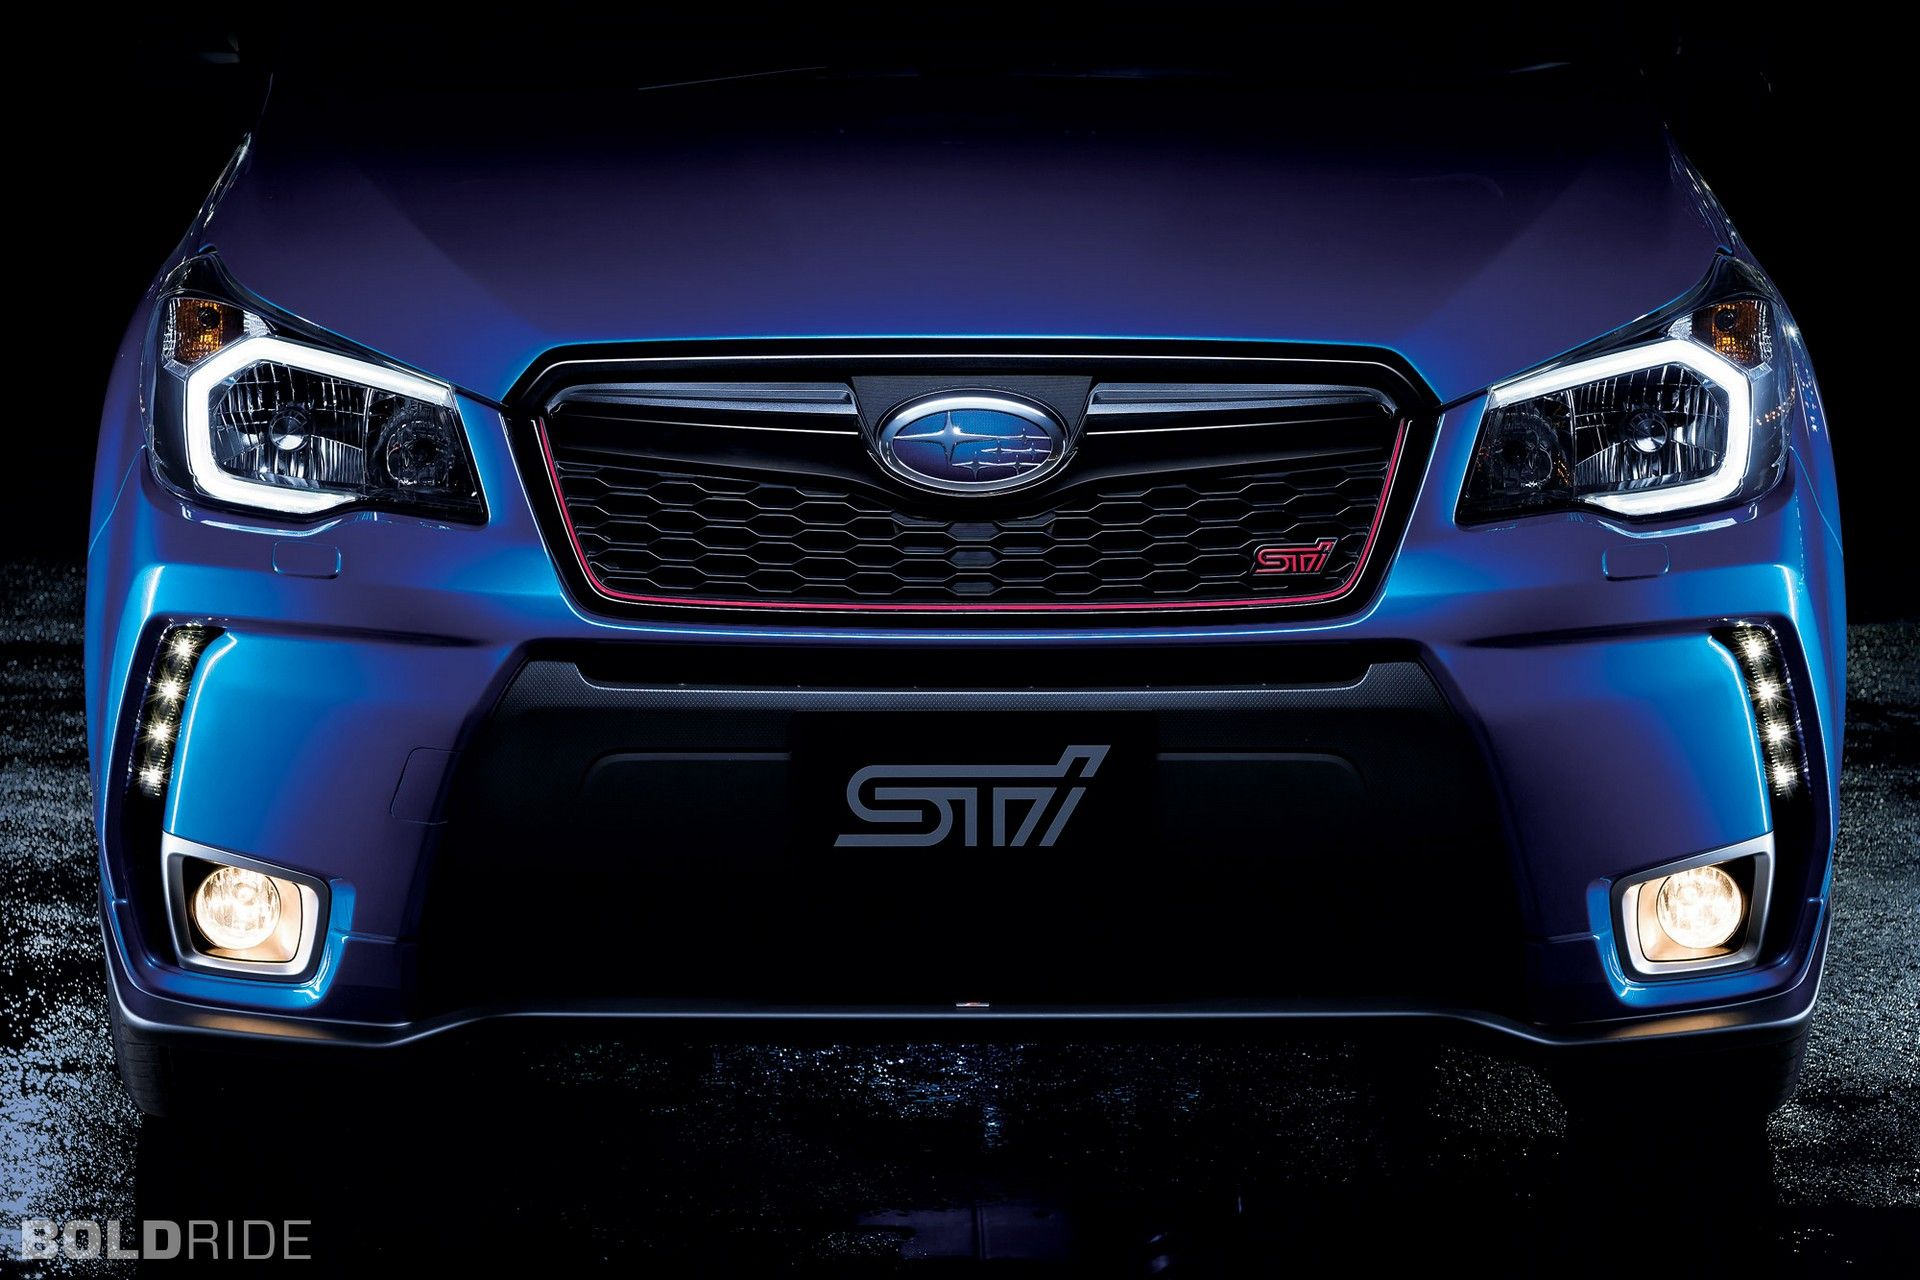 2020 Subaru Forester Xt Review.2020 Subaru Forester Sti Review The 2020 Subaru Forester